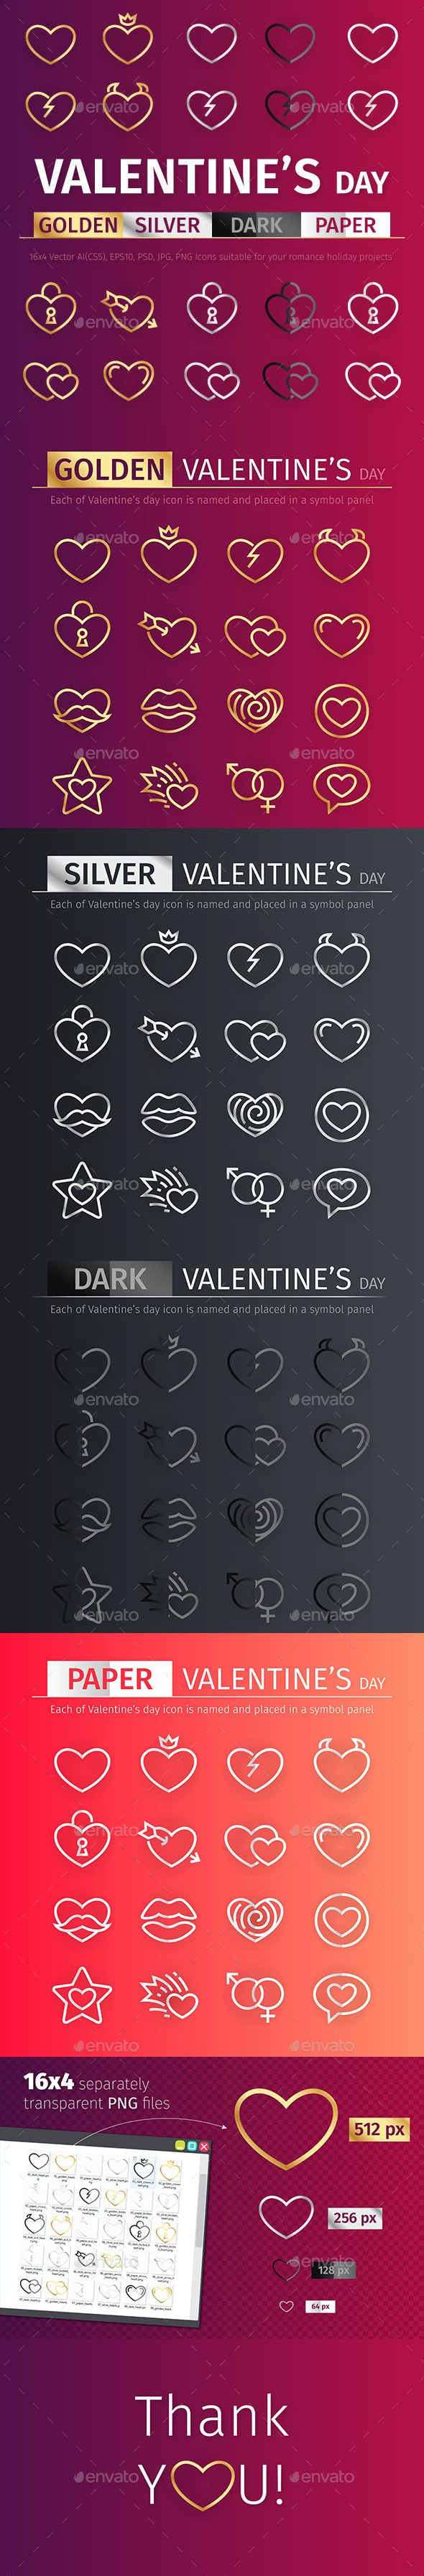 Golden and Silver Valentine's Day Icons Set